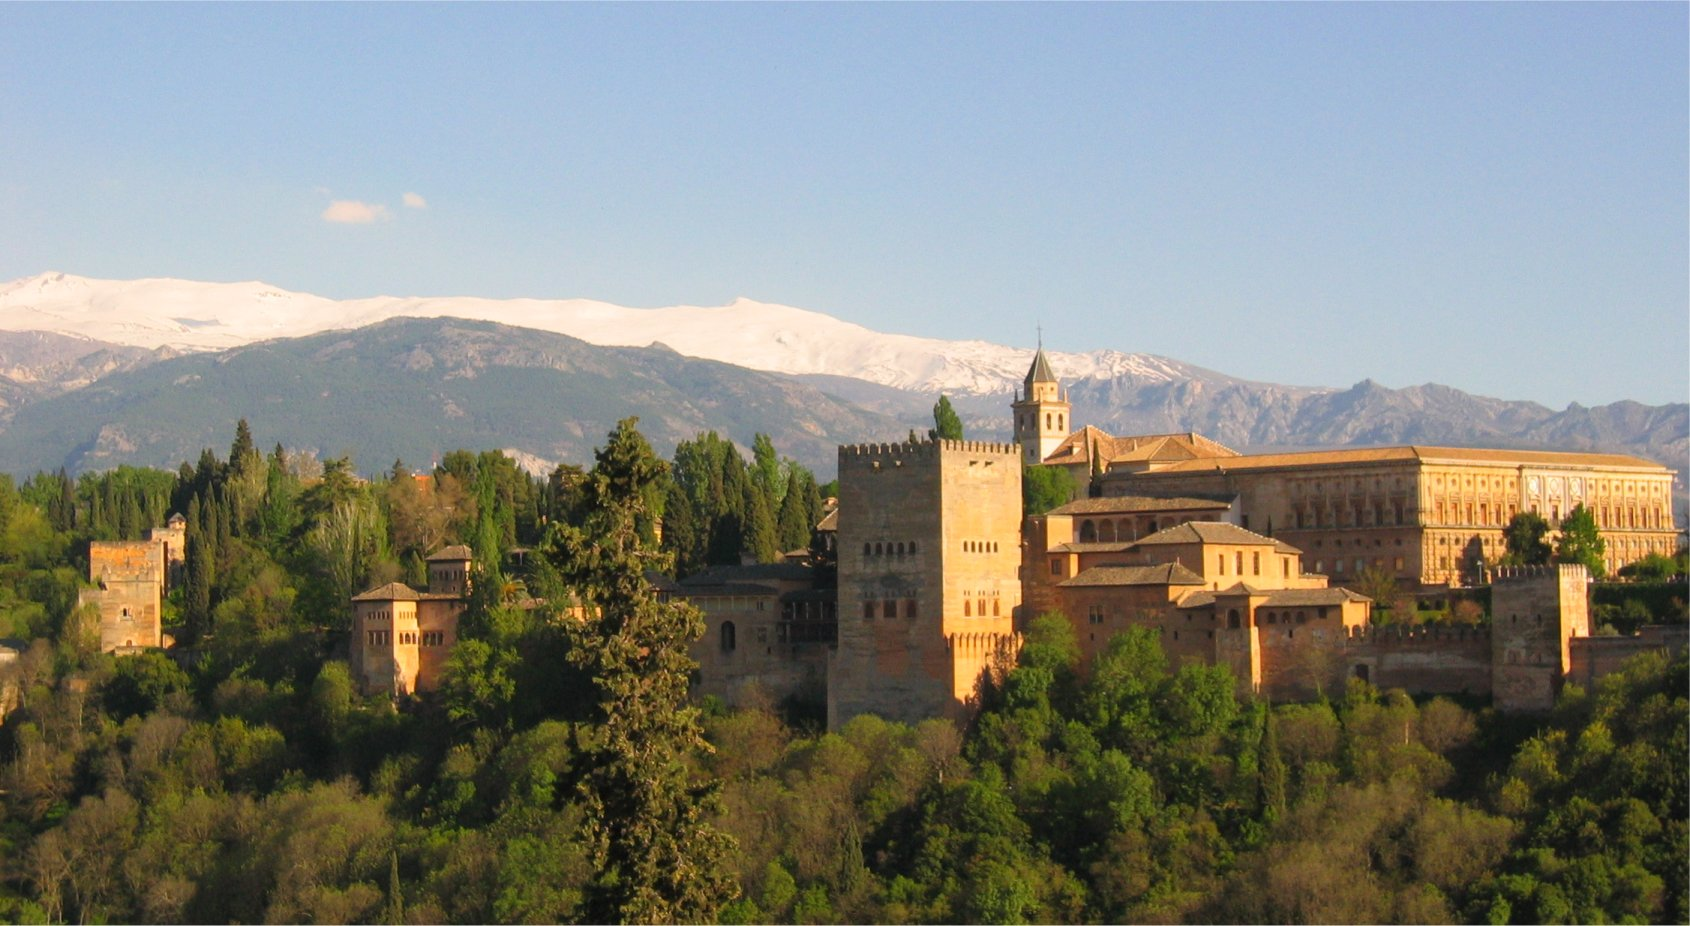 http://www.pvv.org/~erikad/Themepages/Travel/Andalucia/Al_Ahmbra.jpg